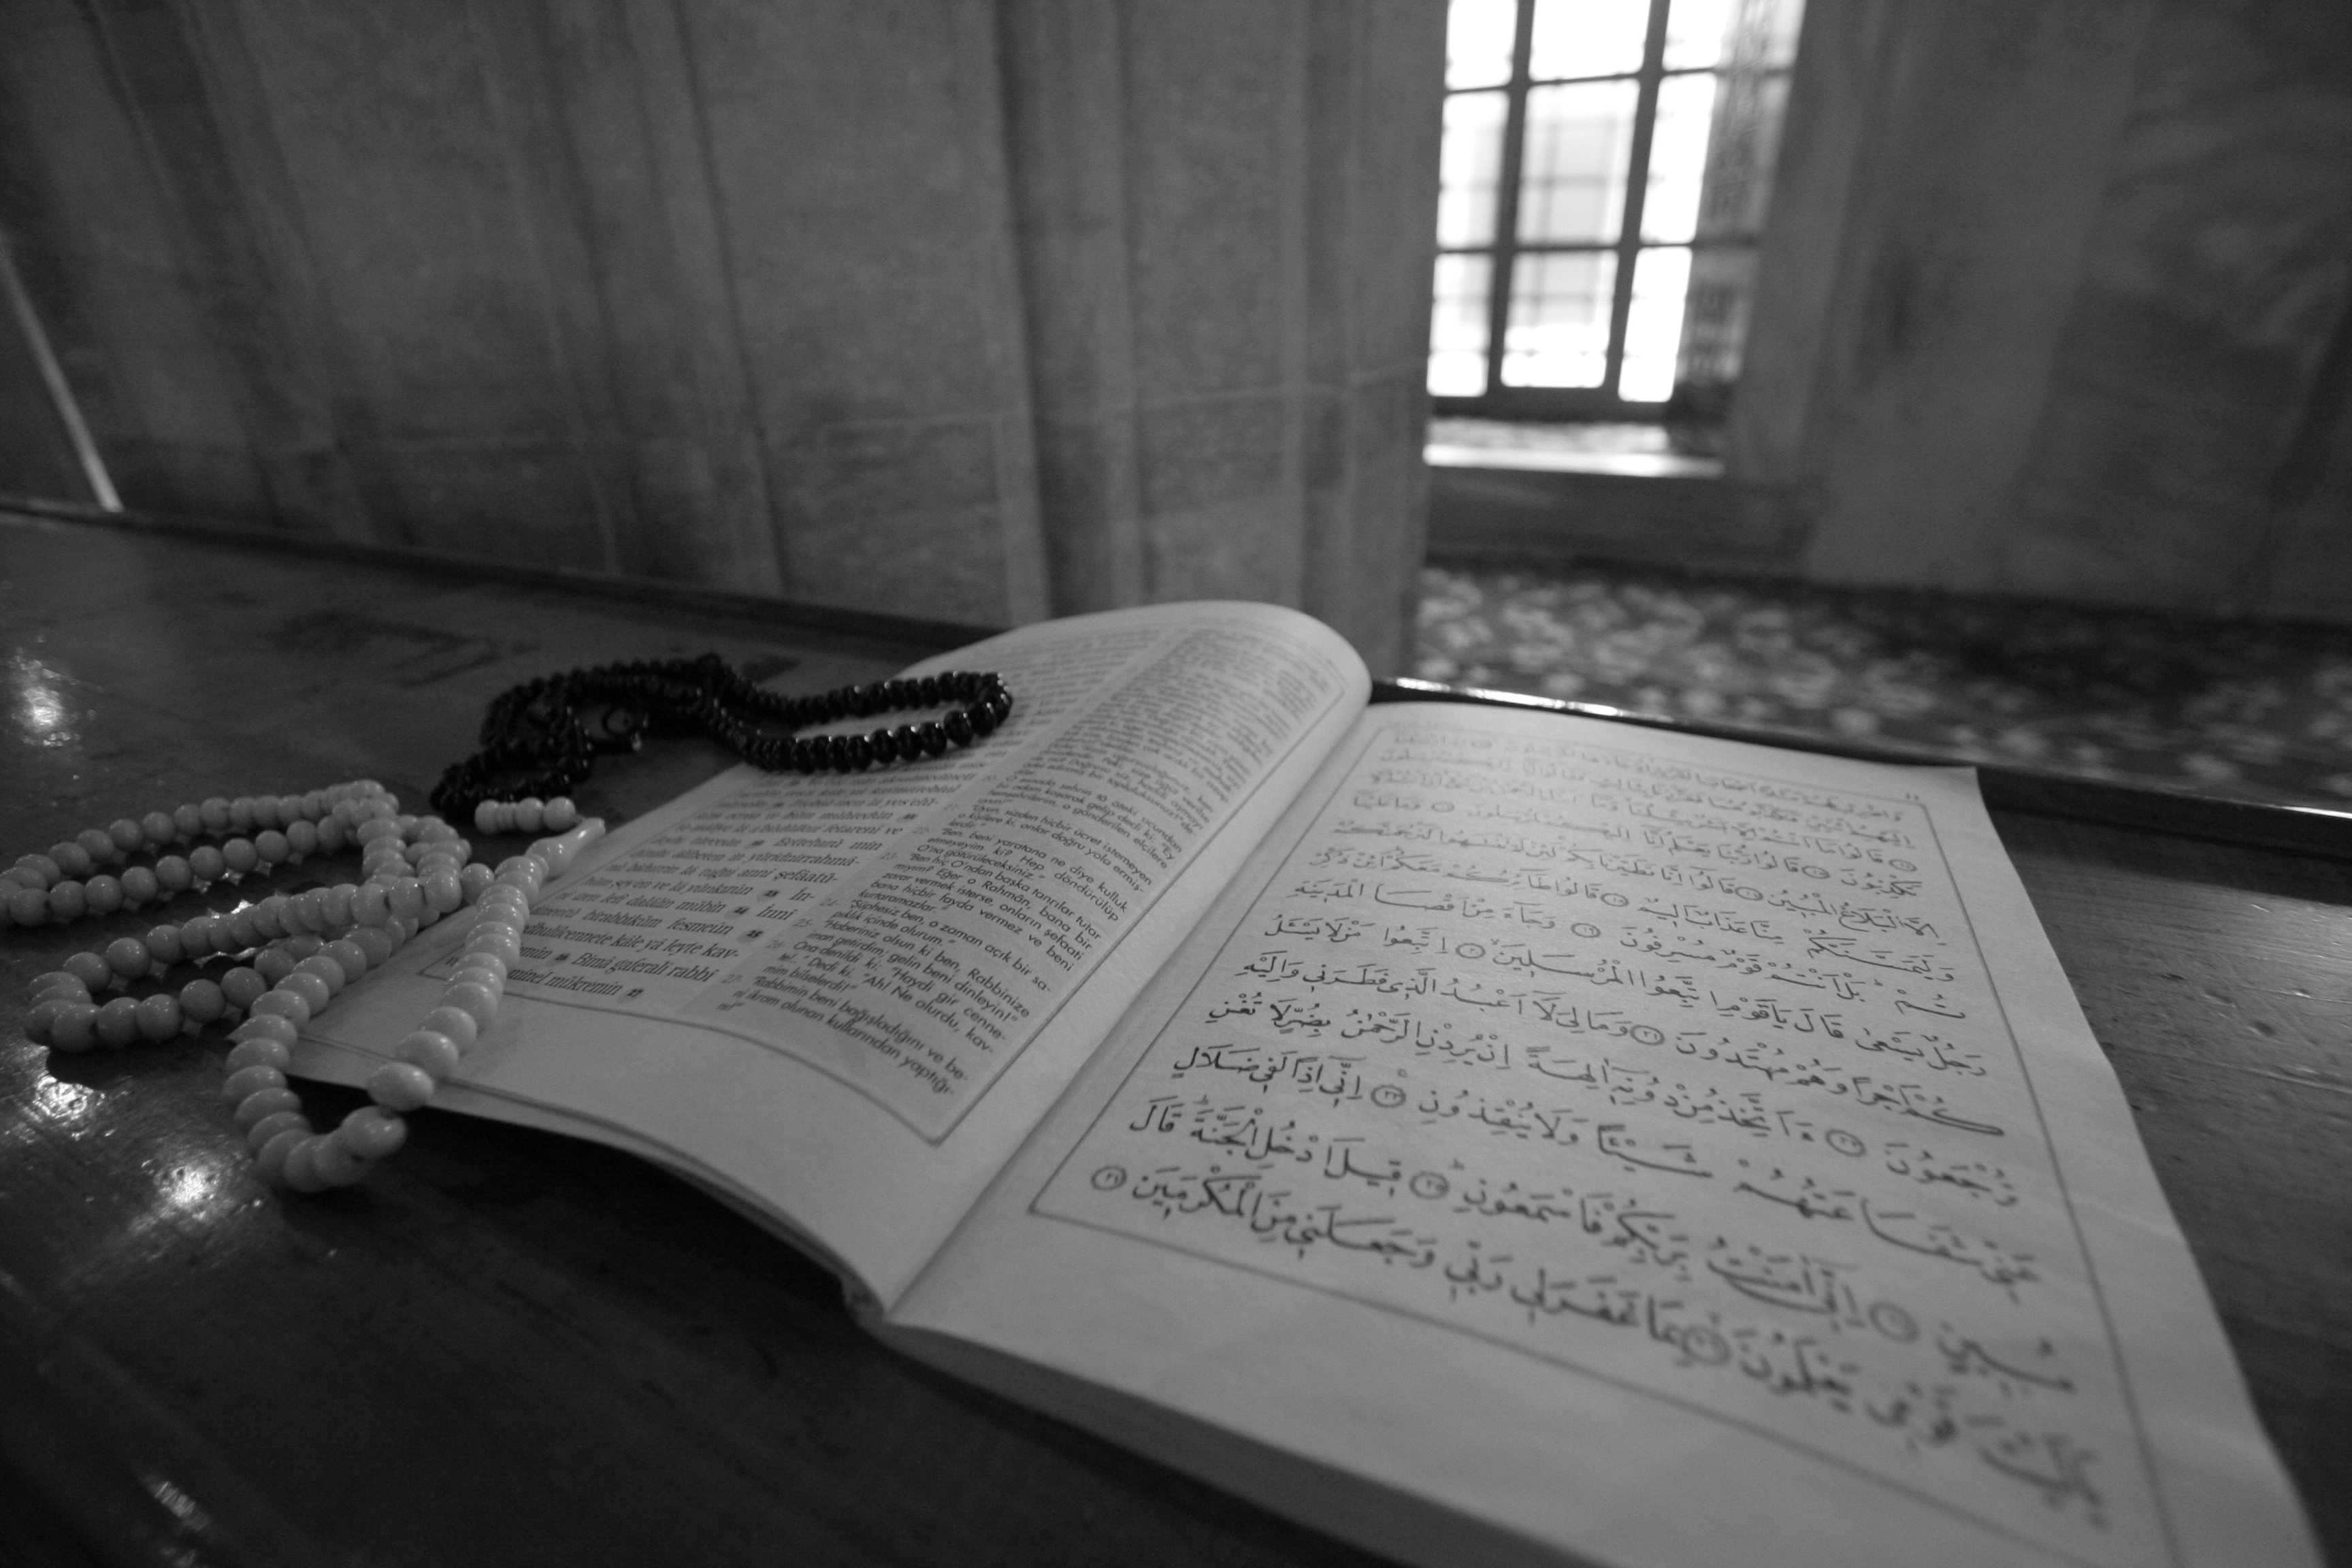 The Holy Koran (Qu'ran) via Flickr Creative Commons